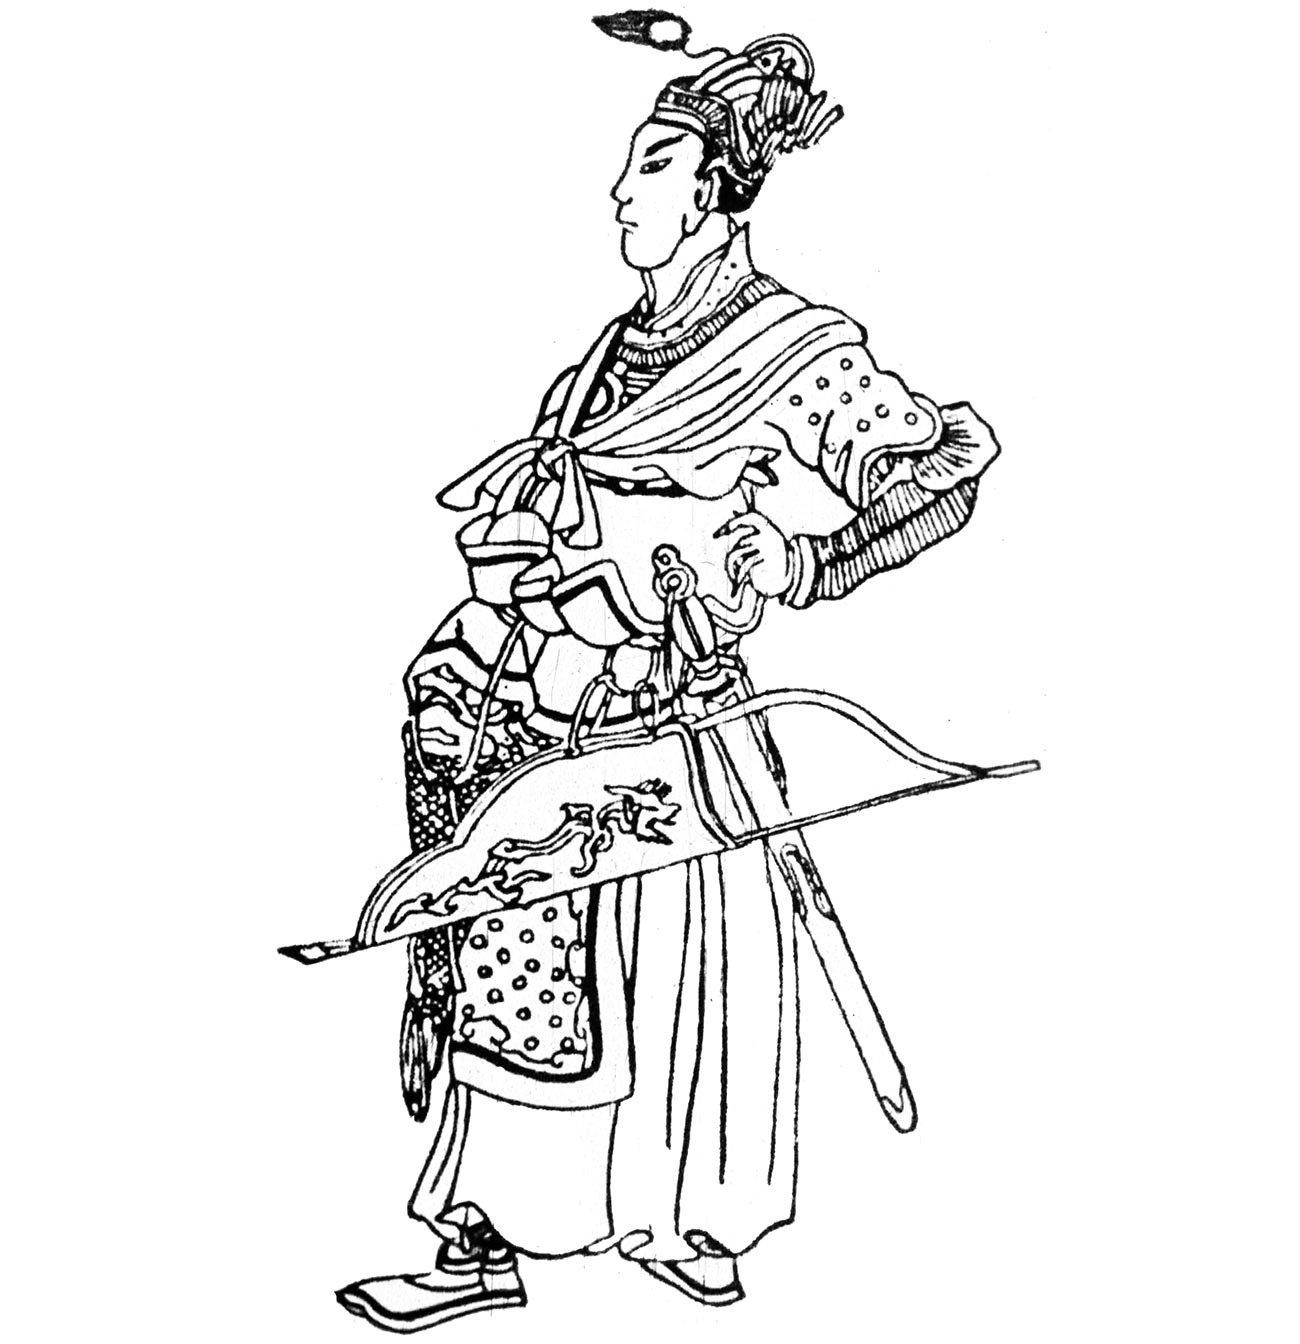 Batu Khan as seen on a Middle Ages Chinese etching